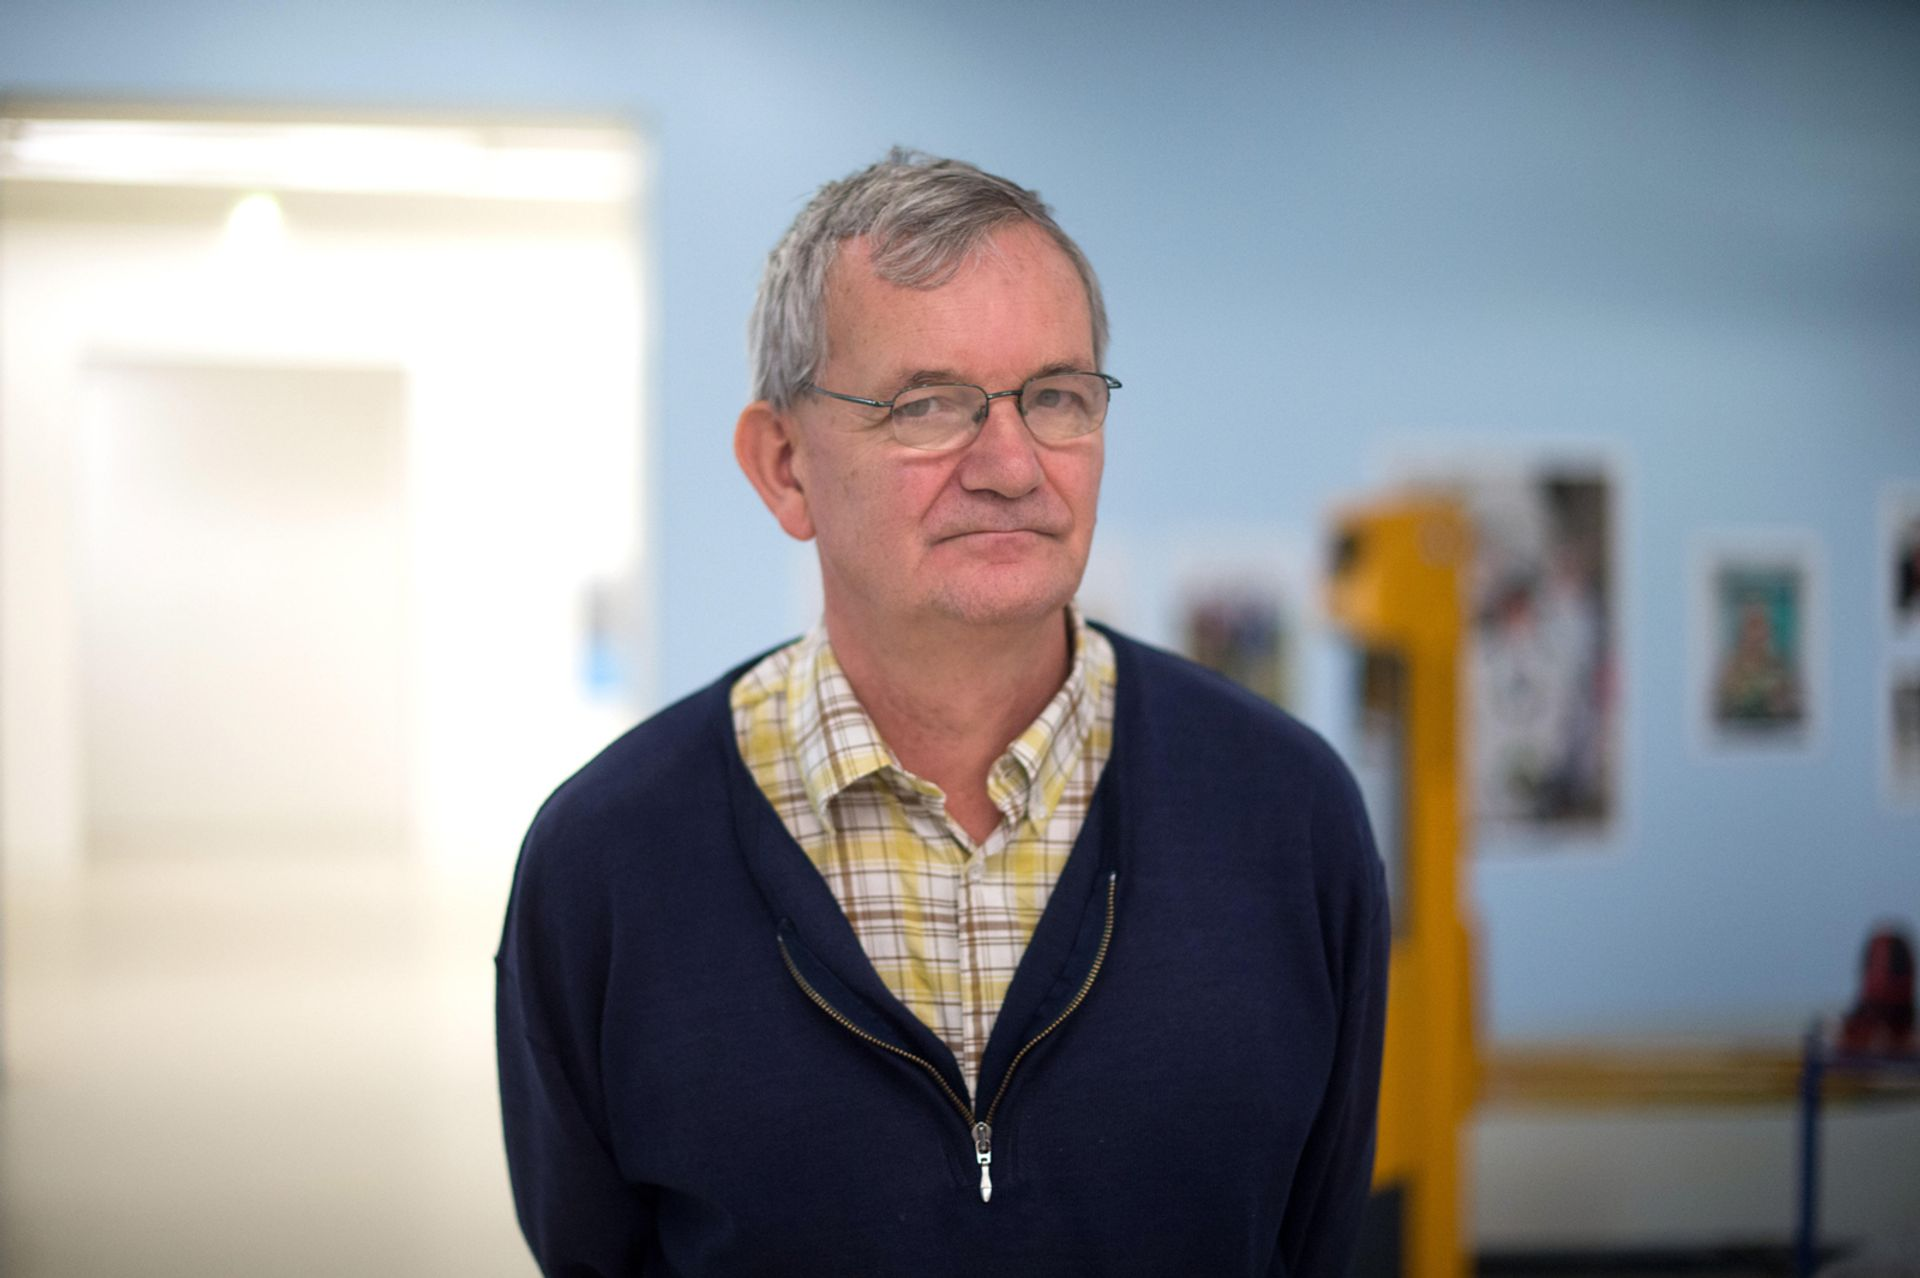 The prominent UK photographer Martin Parr is at the centre of an anti-racism campaign launched by a 20-year-old student ©dpa picture alliance / Alamy Stock Photo